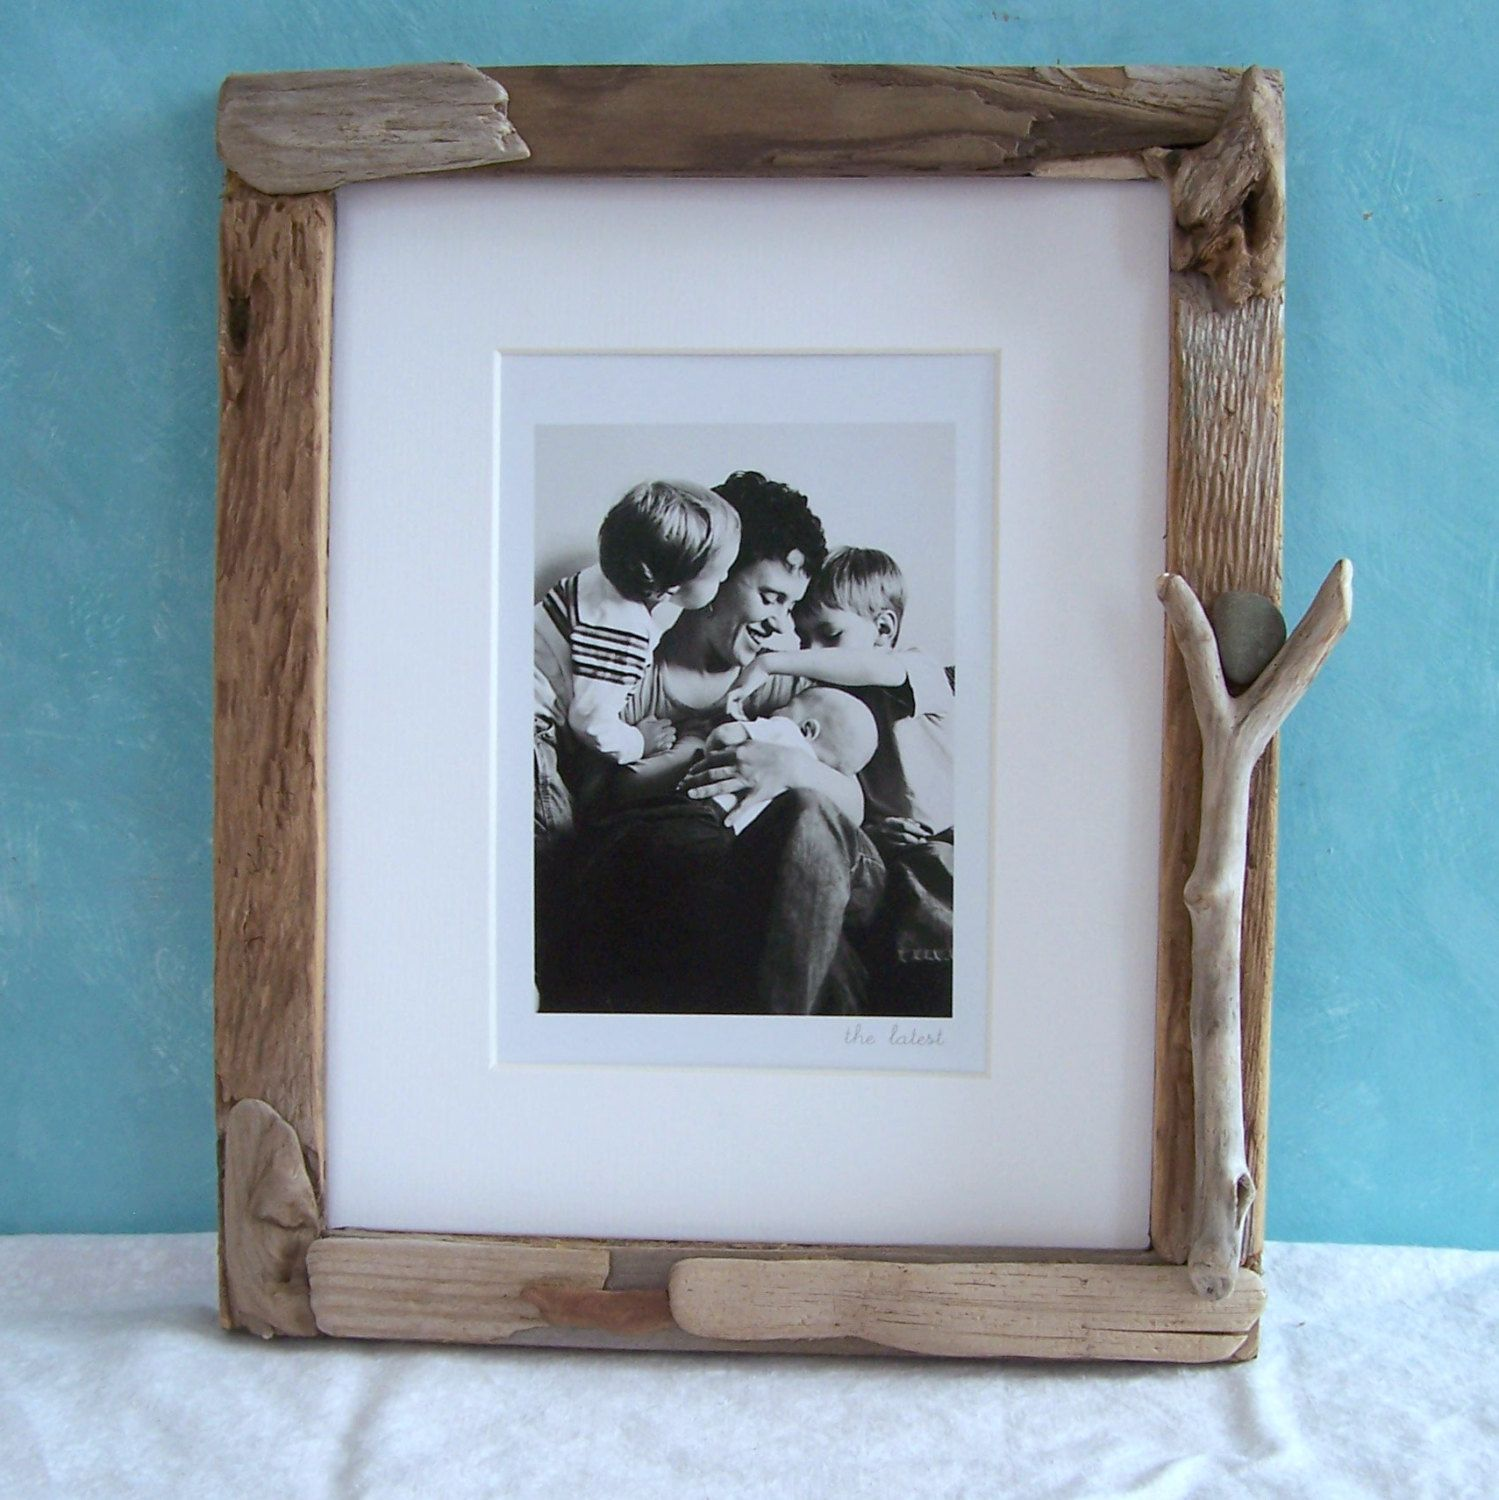 8 X 10 Driftwood Frame Driftwood Picture Frame By Blackeyedsusan 60 00 Driftwood Frame Frame Picture Frames